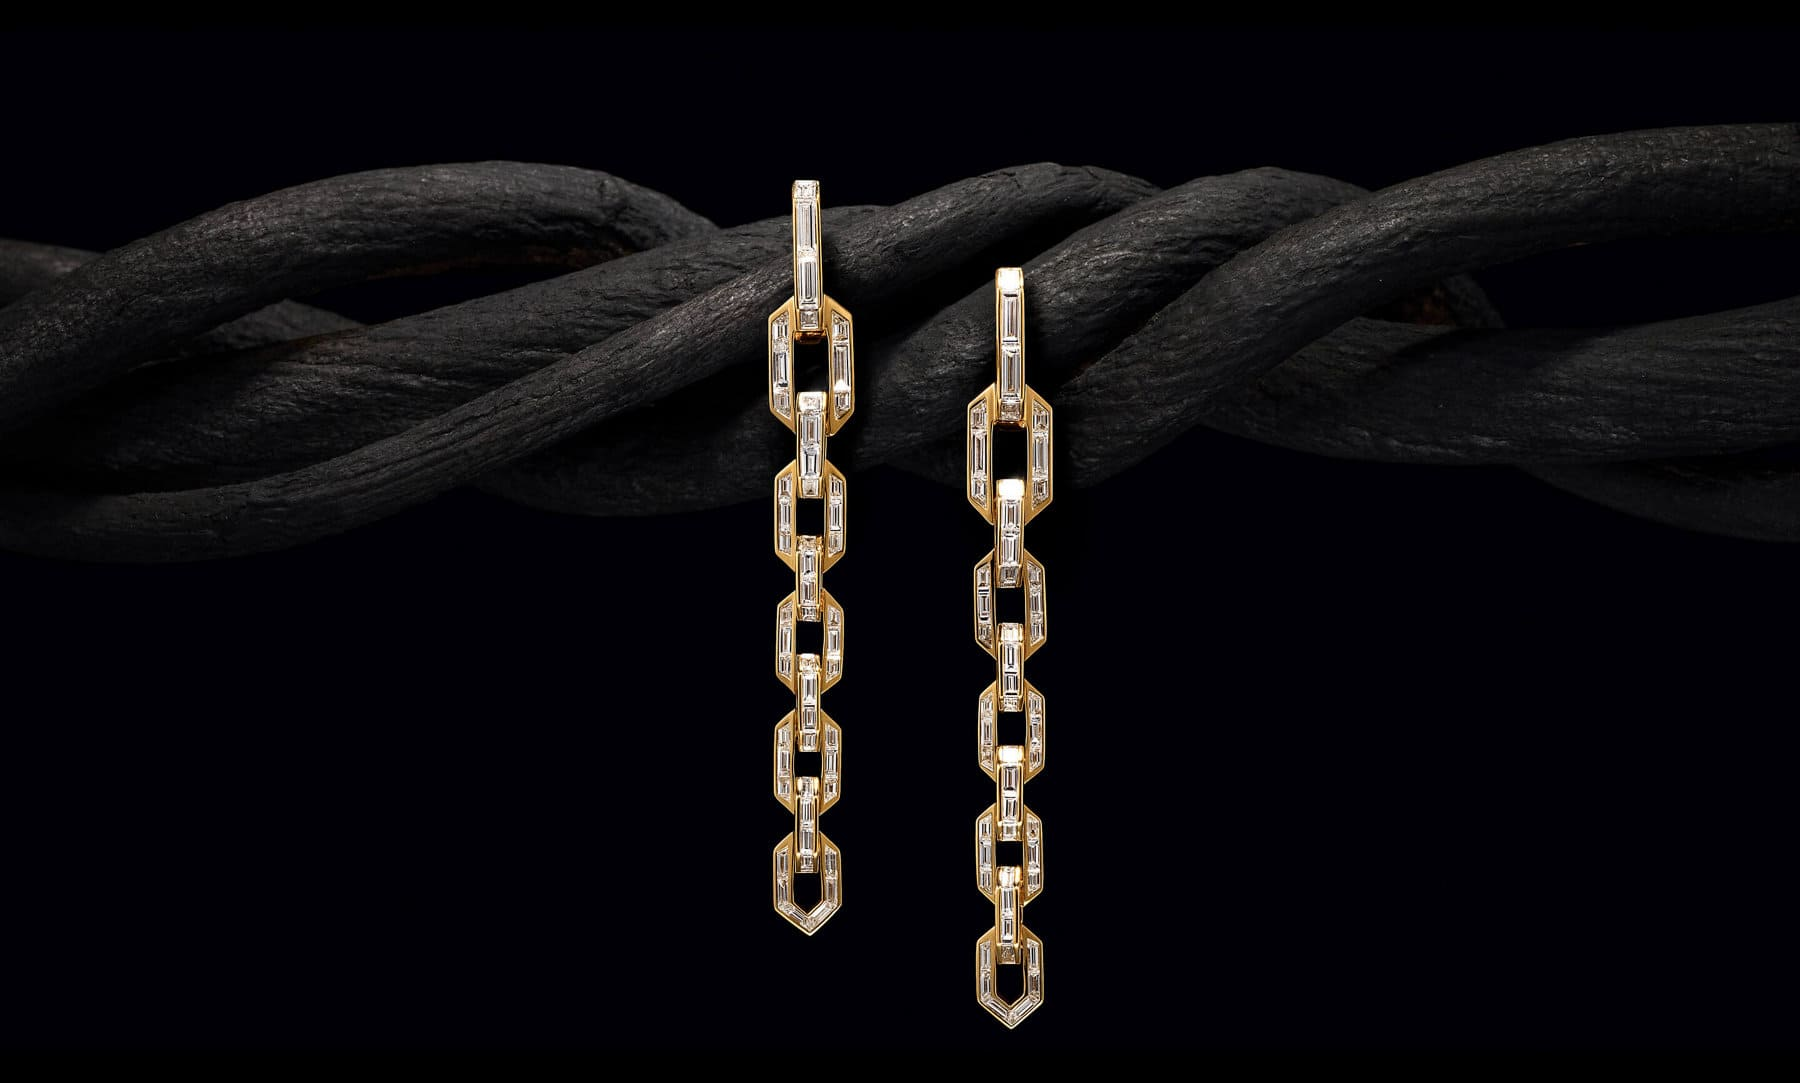 A color photo shows a pair of David Yurman High Jewelry Stax earrings hanging at different levels and superimposed over the center of a photo of a thick, brown twisted tree branch reminiscent of Cable. The jewelry is crafted from 18K yellow gold and is fully set with baguette- and custom-cut white diamonds.